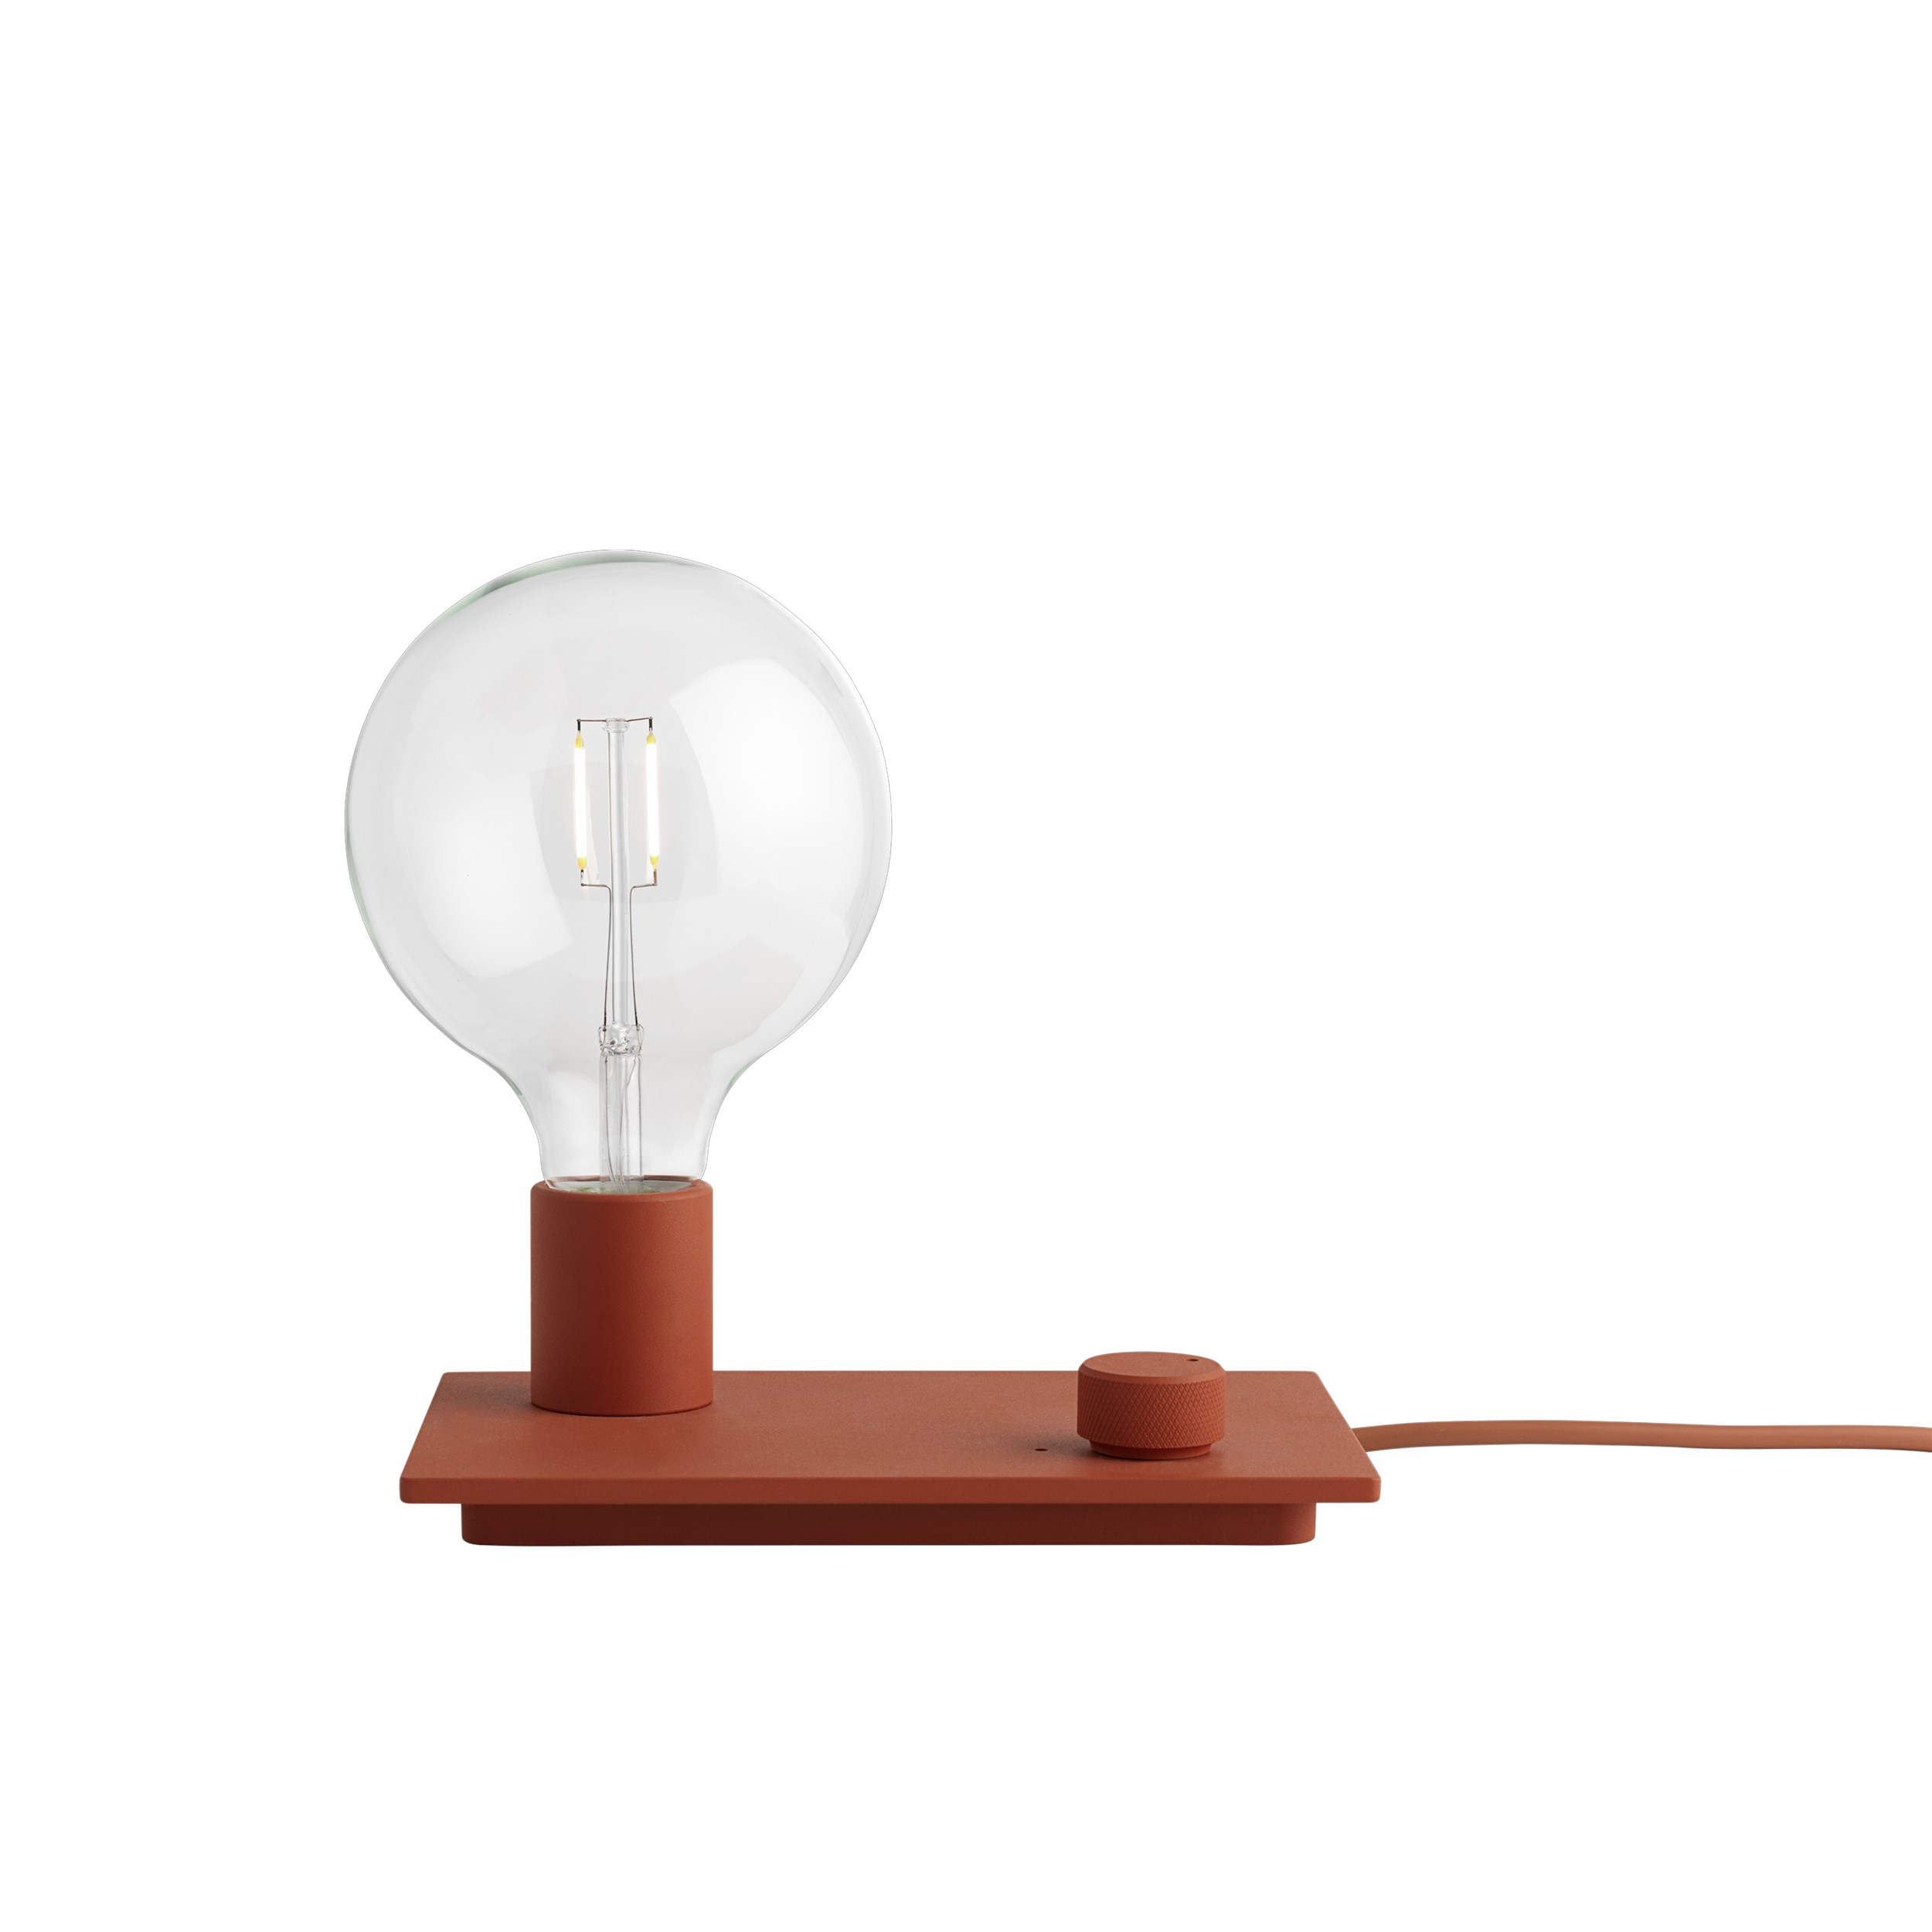 Control lamp red